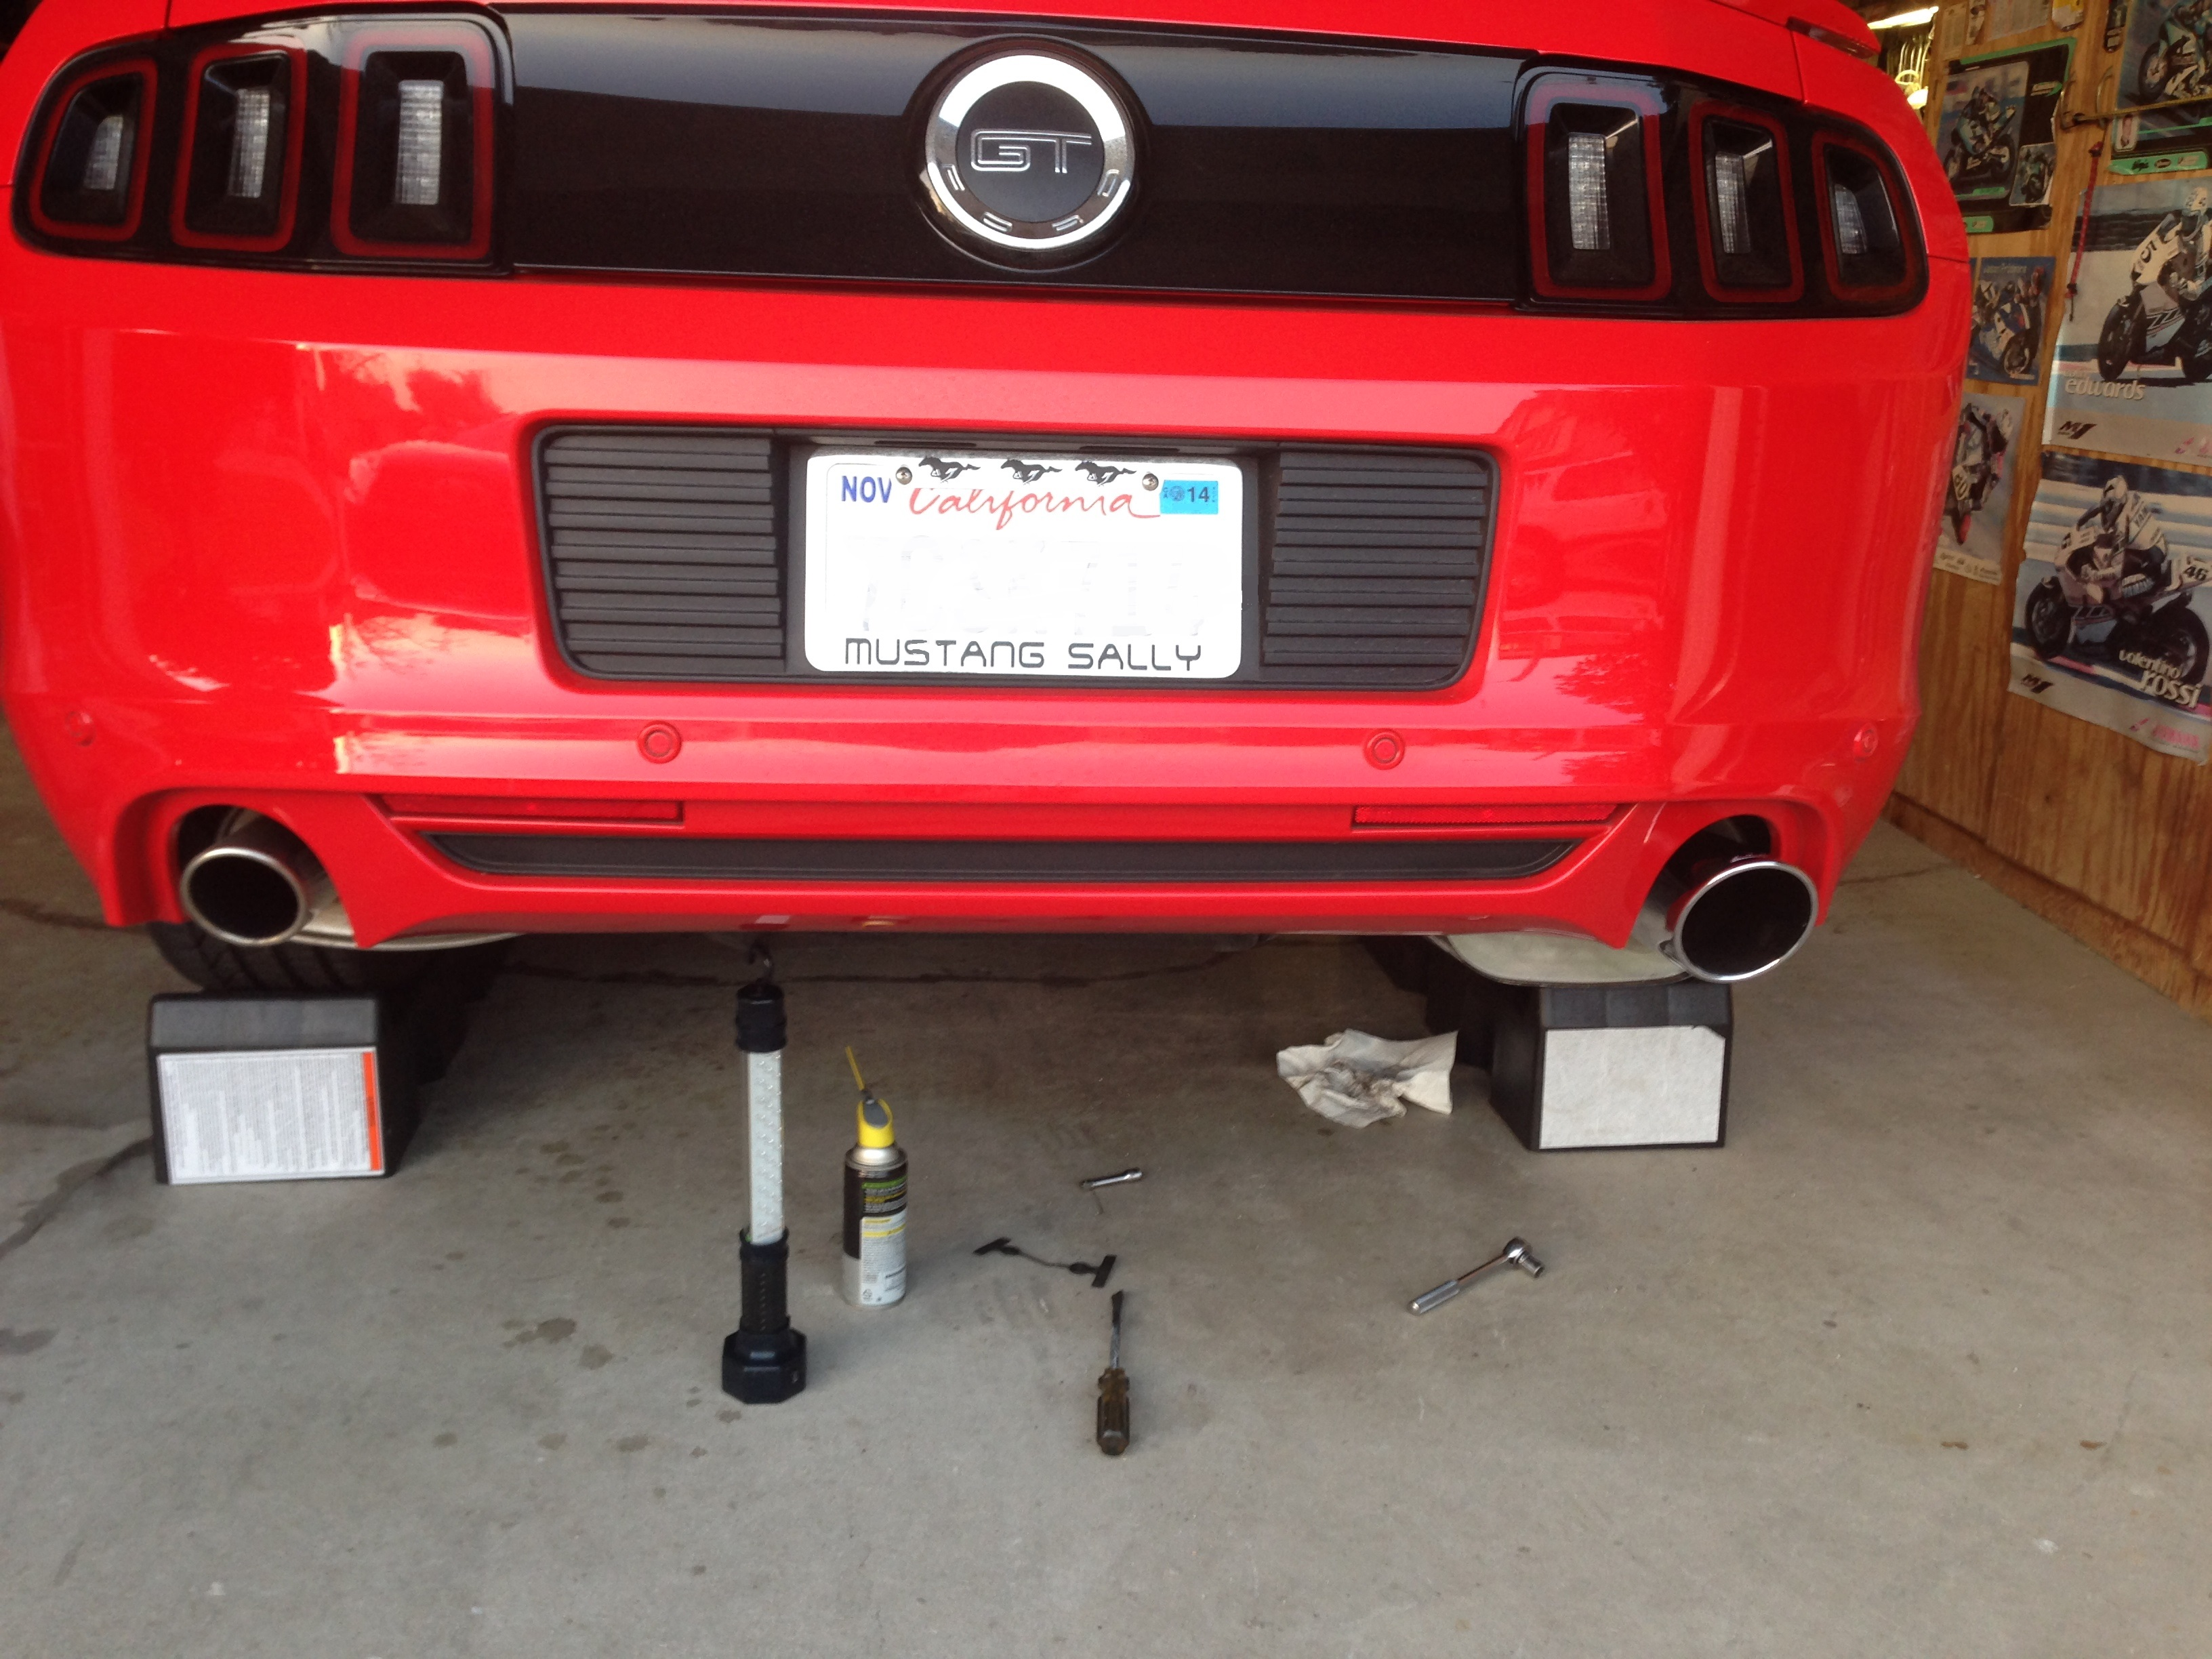 Click image for larger version  Name:GT Pipes 2.jpg Views:105 Size:1.58 MB ID:152157